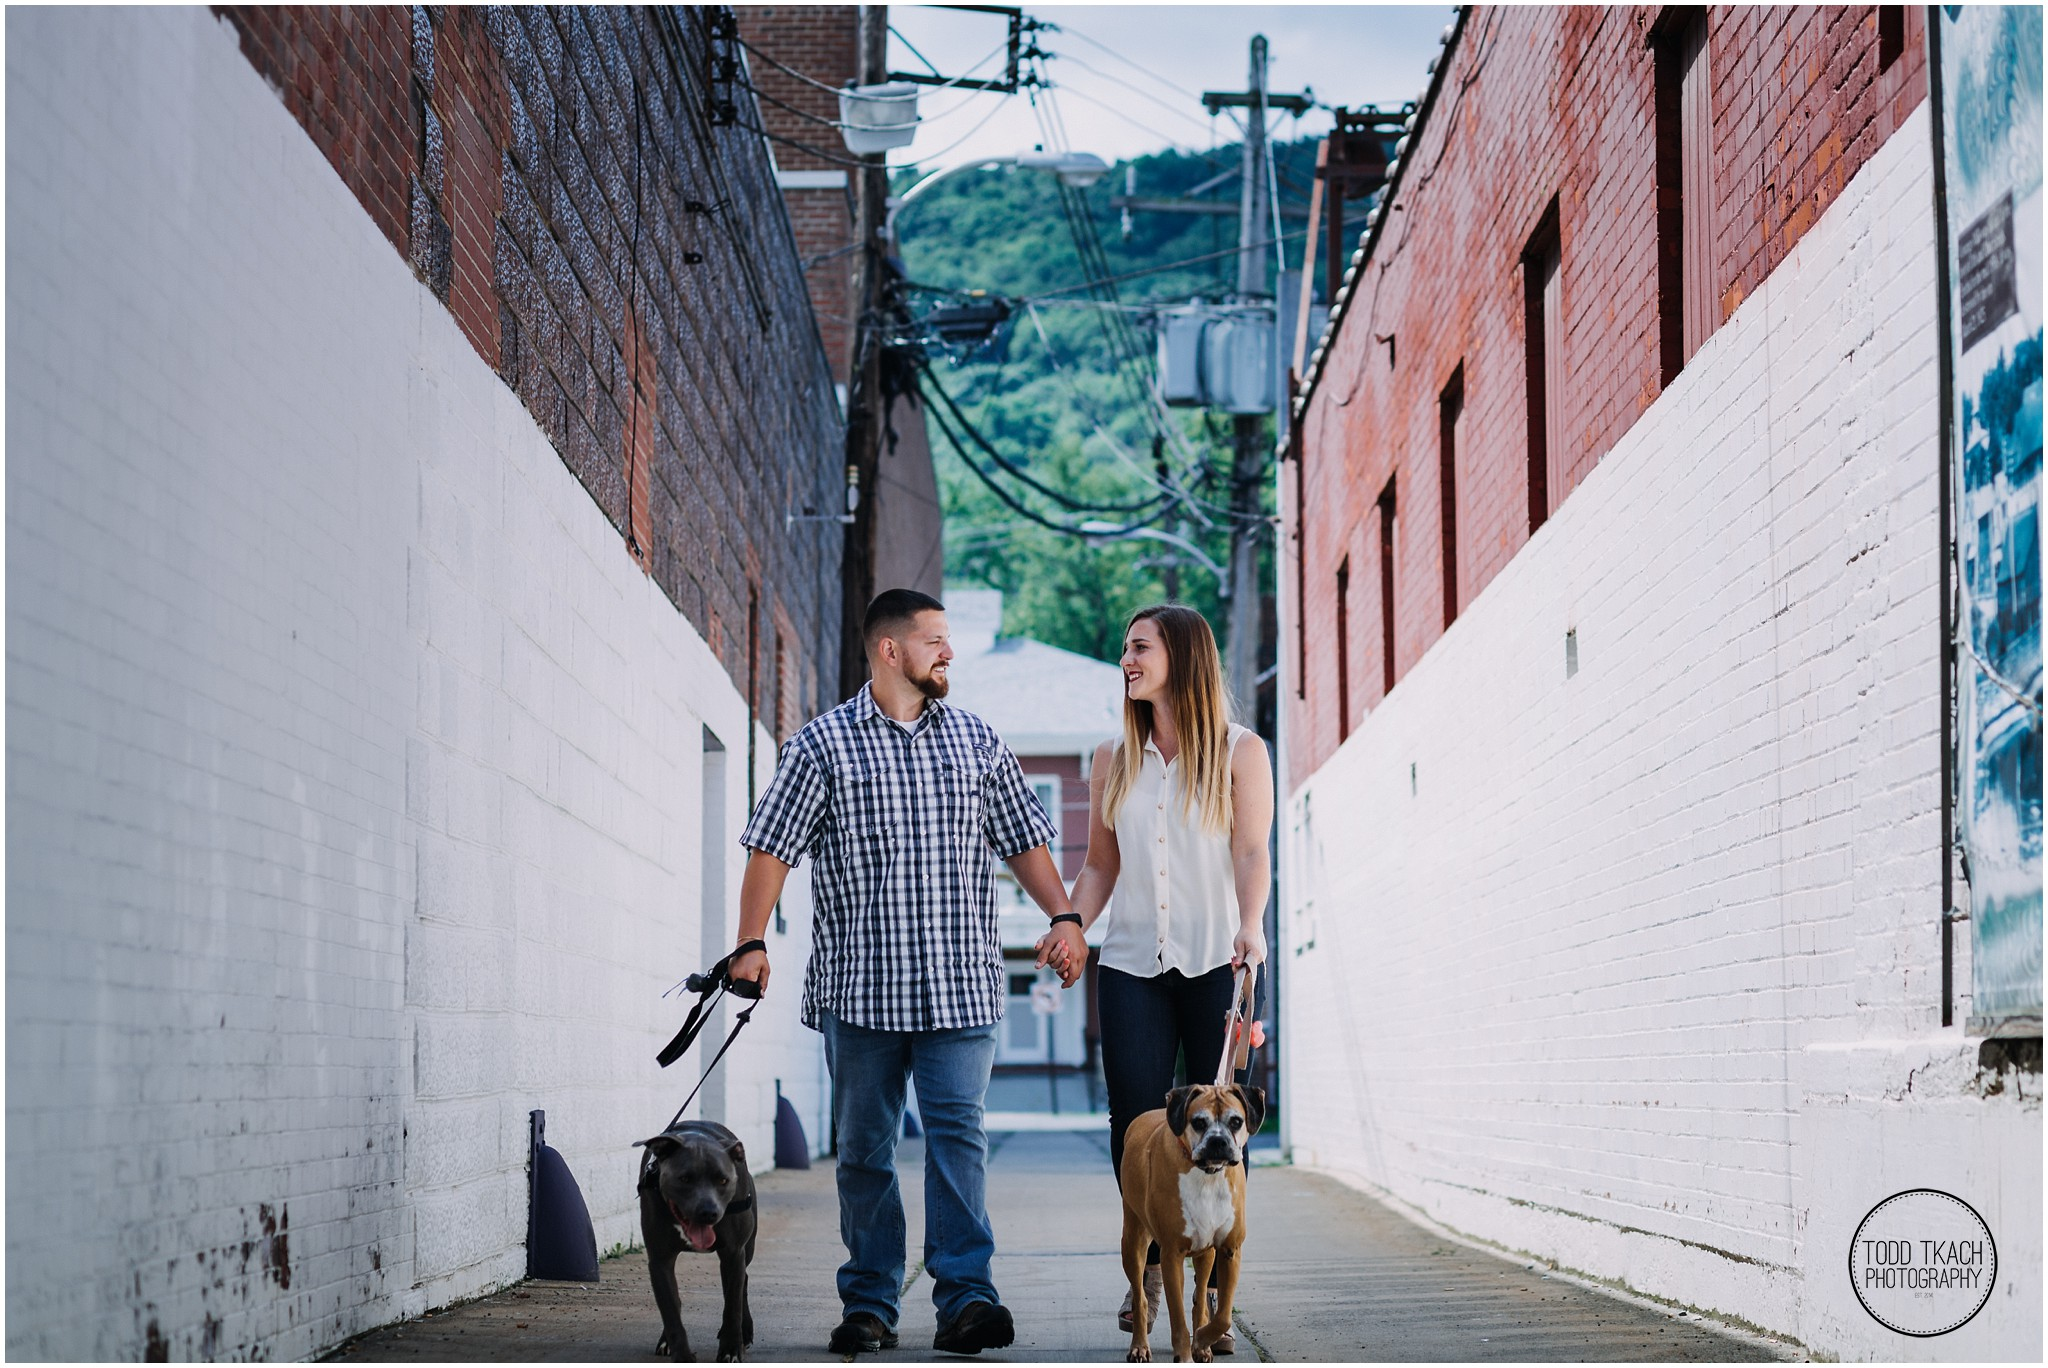 Kim & Brandon Engagement - Franklin Alleyway Walk with Dogs